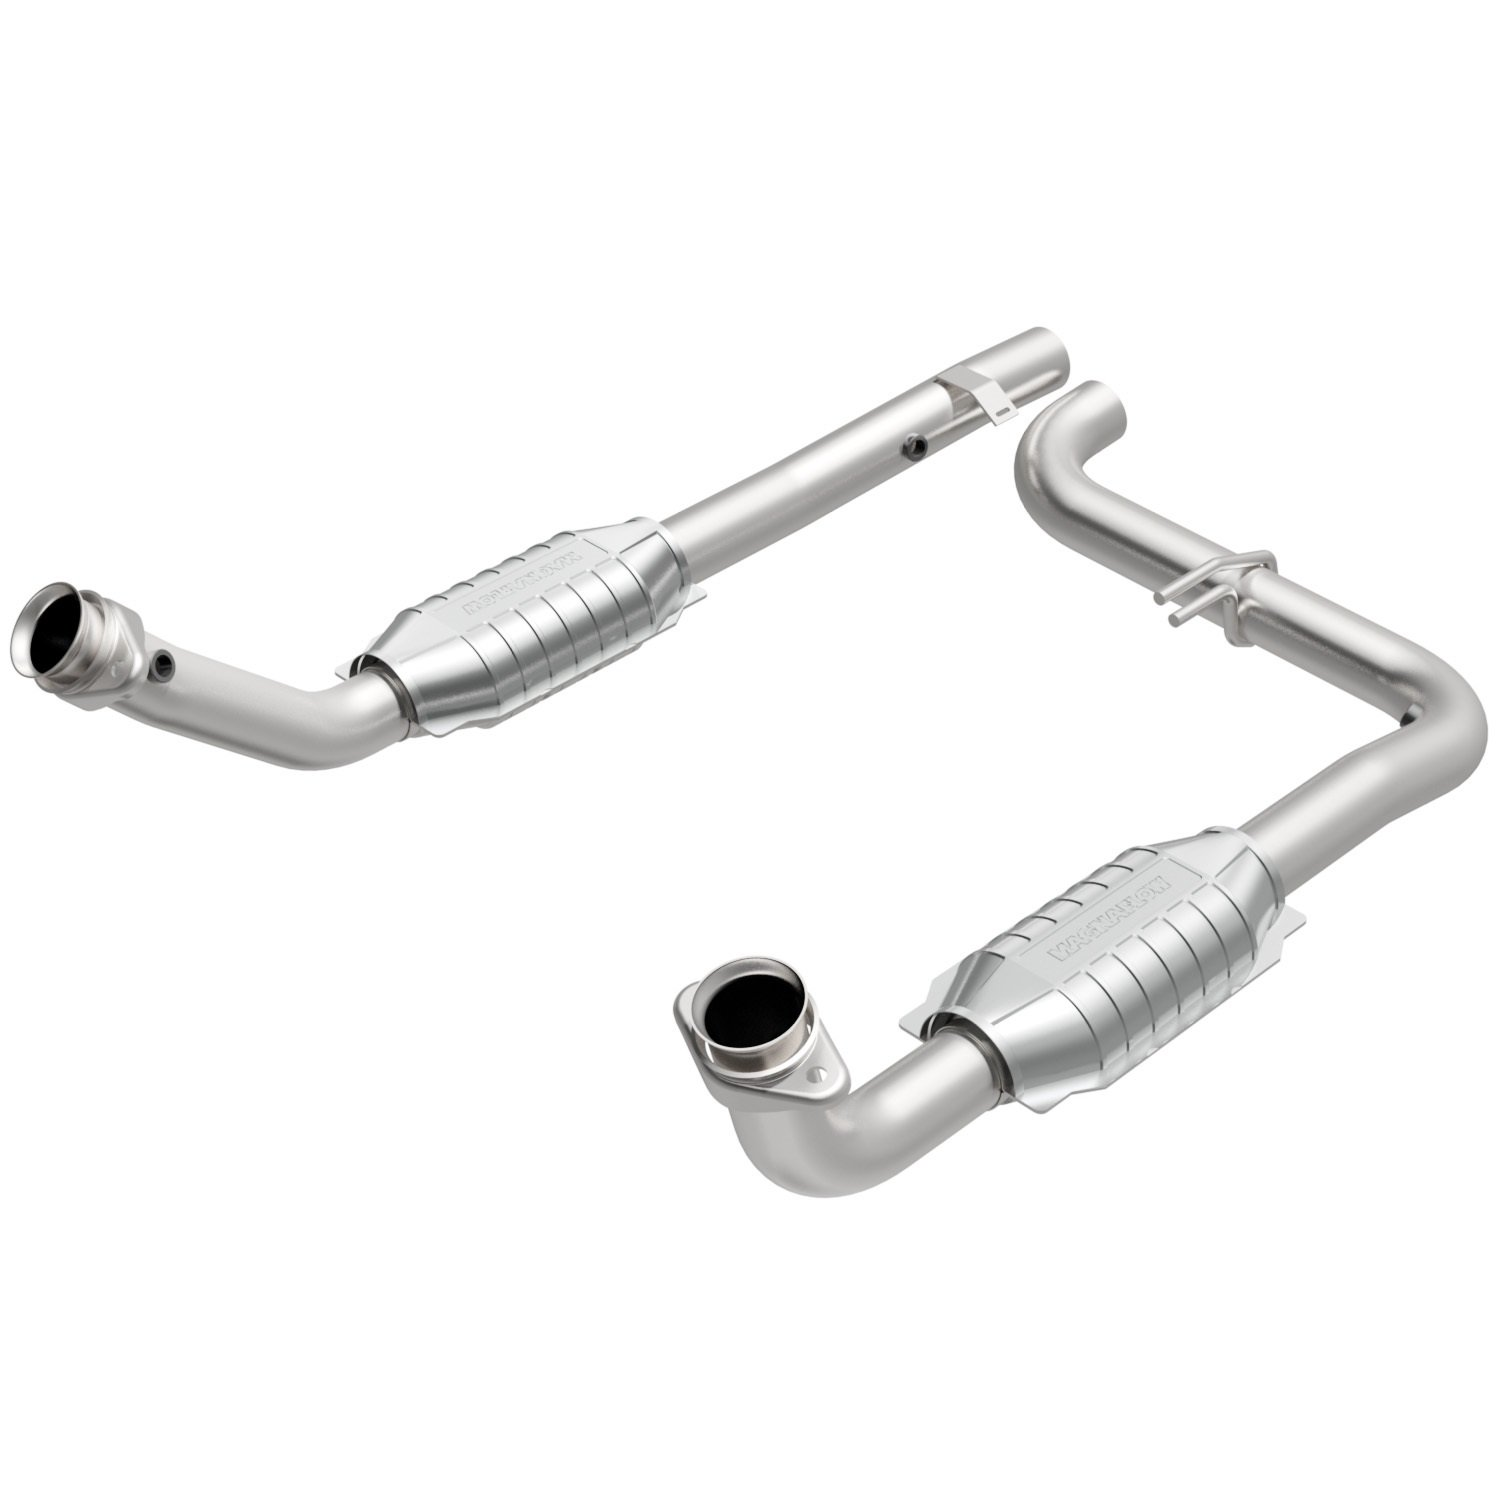 MagnaFlow 50467 Direct Fit Catalytic Converter Non CARB compliant